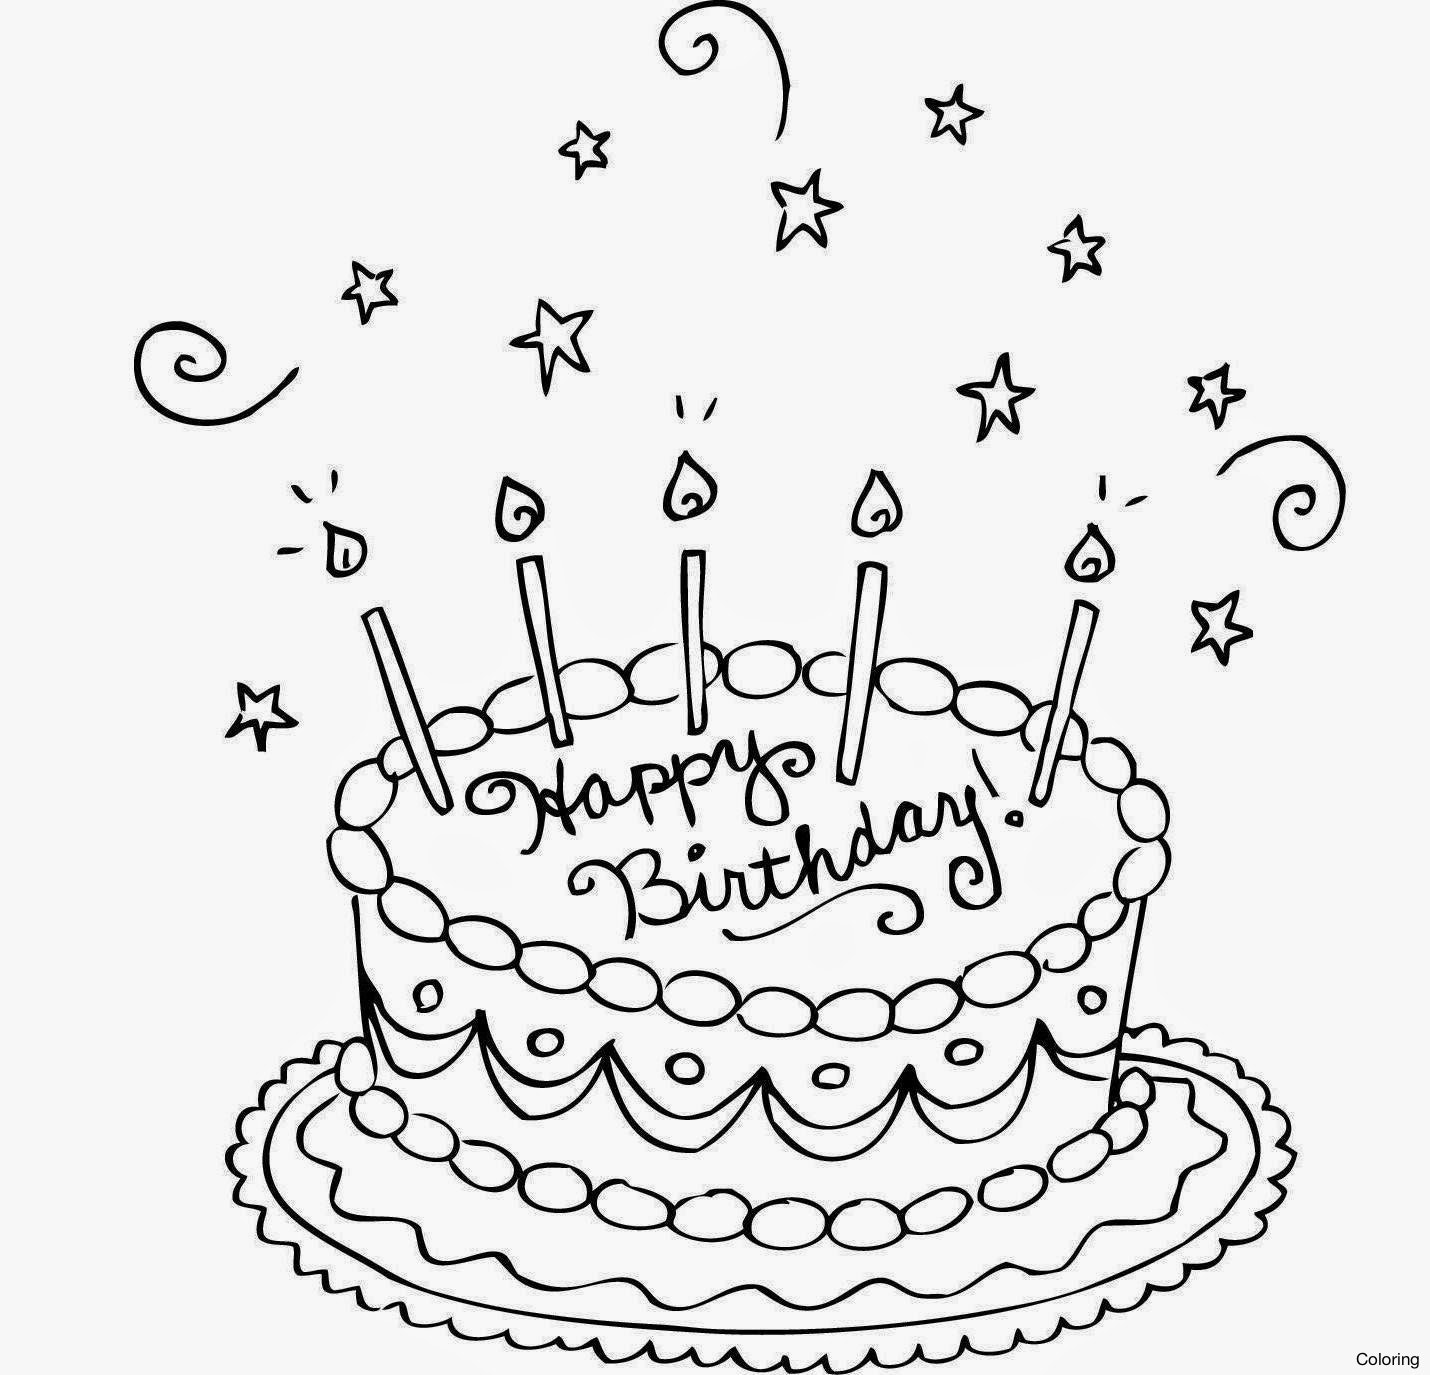 1430x1375 Ptodkxggc Drawing Of A Cake Coloring Very Nice Drawings Birthday